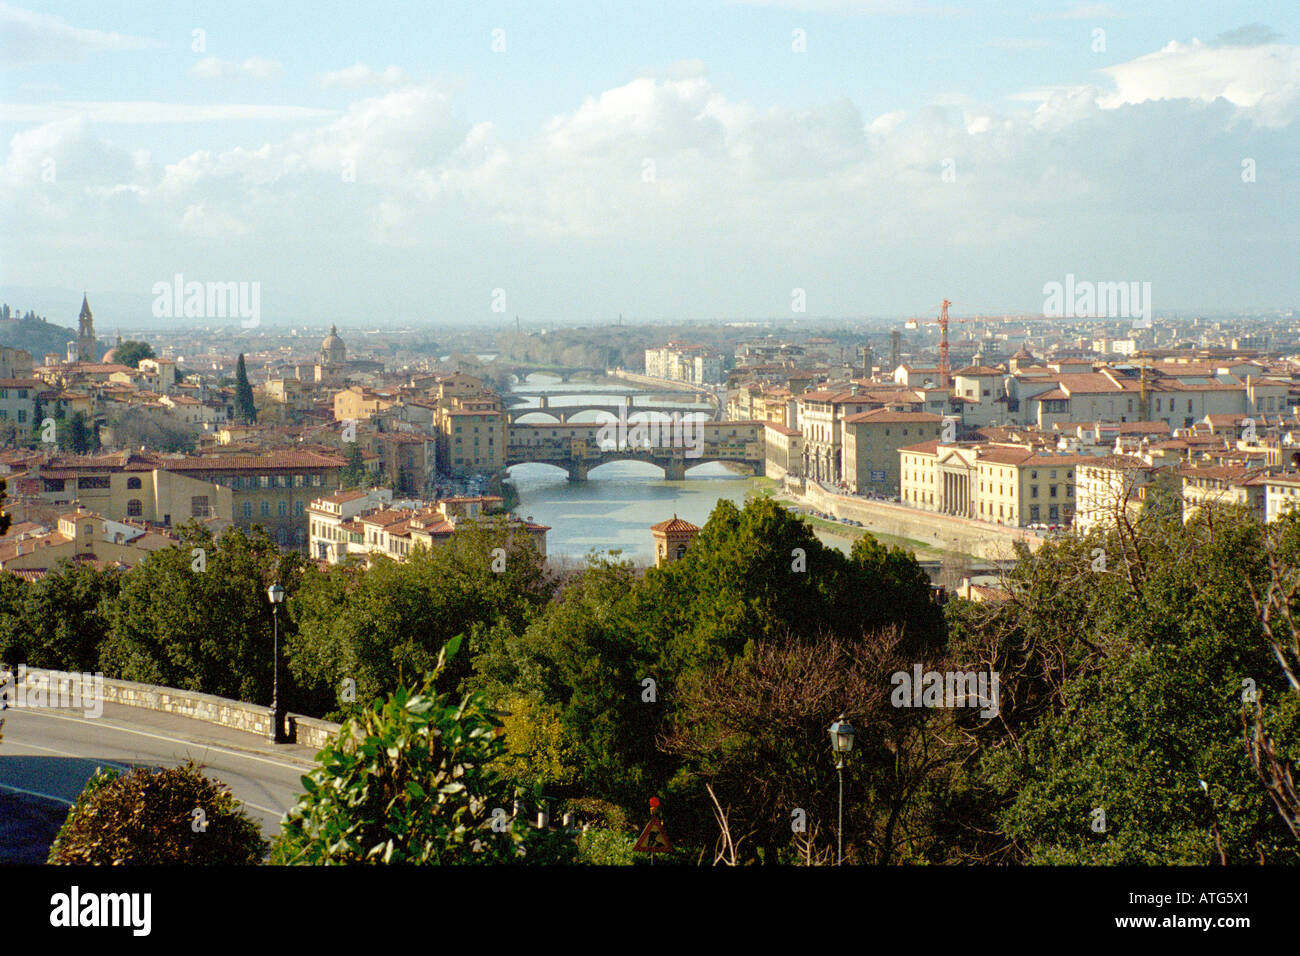 Arno Firenze - View of Arno Fiver and Bridges in Florence, Italy - Stock Image